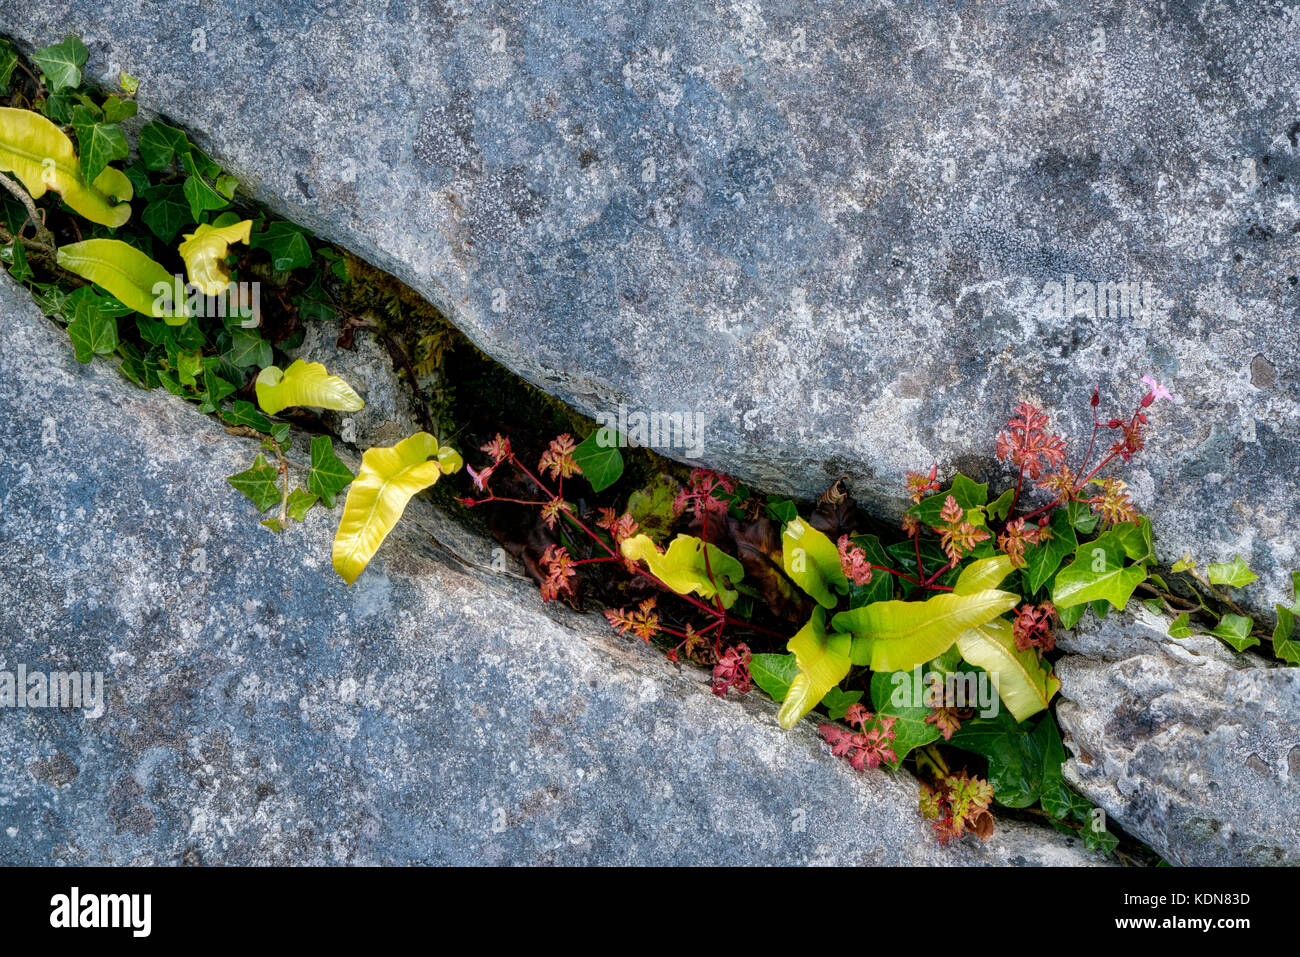 Hart's Tongue fern (Asplenium scolopendrium) and Herb Robert wildflowers with red leaves growing in Karst limestone. Stock Photo